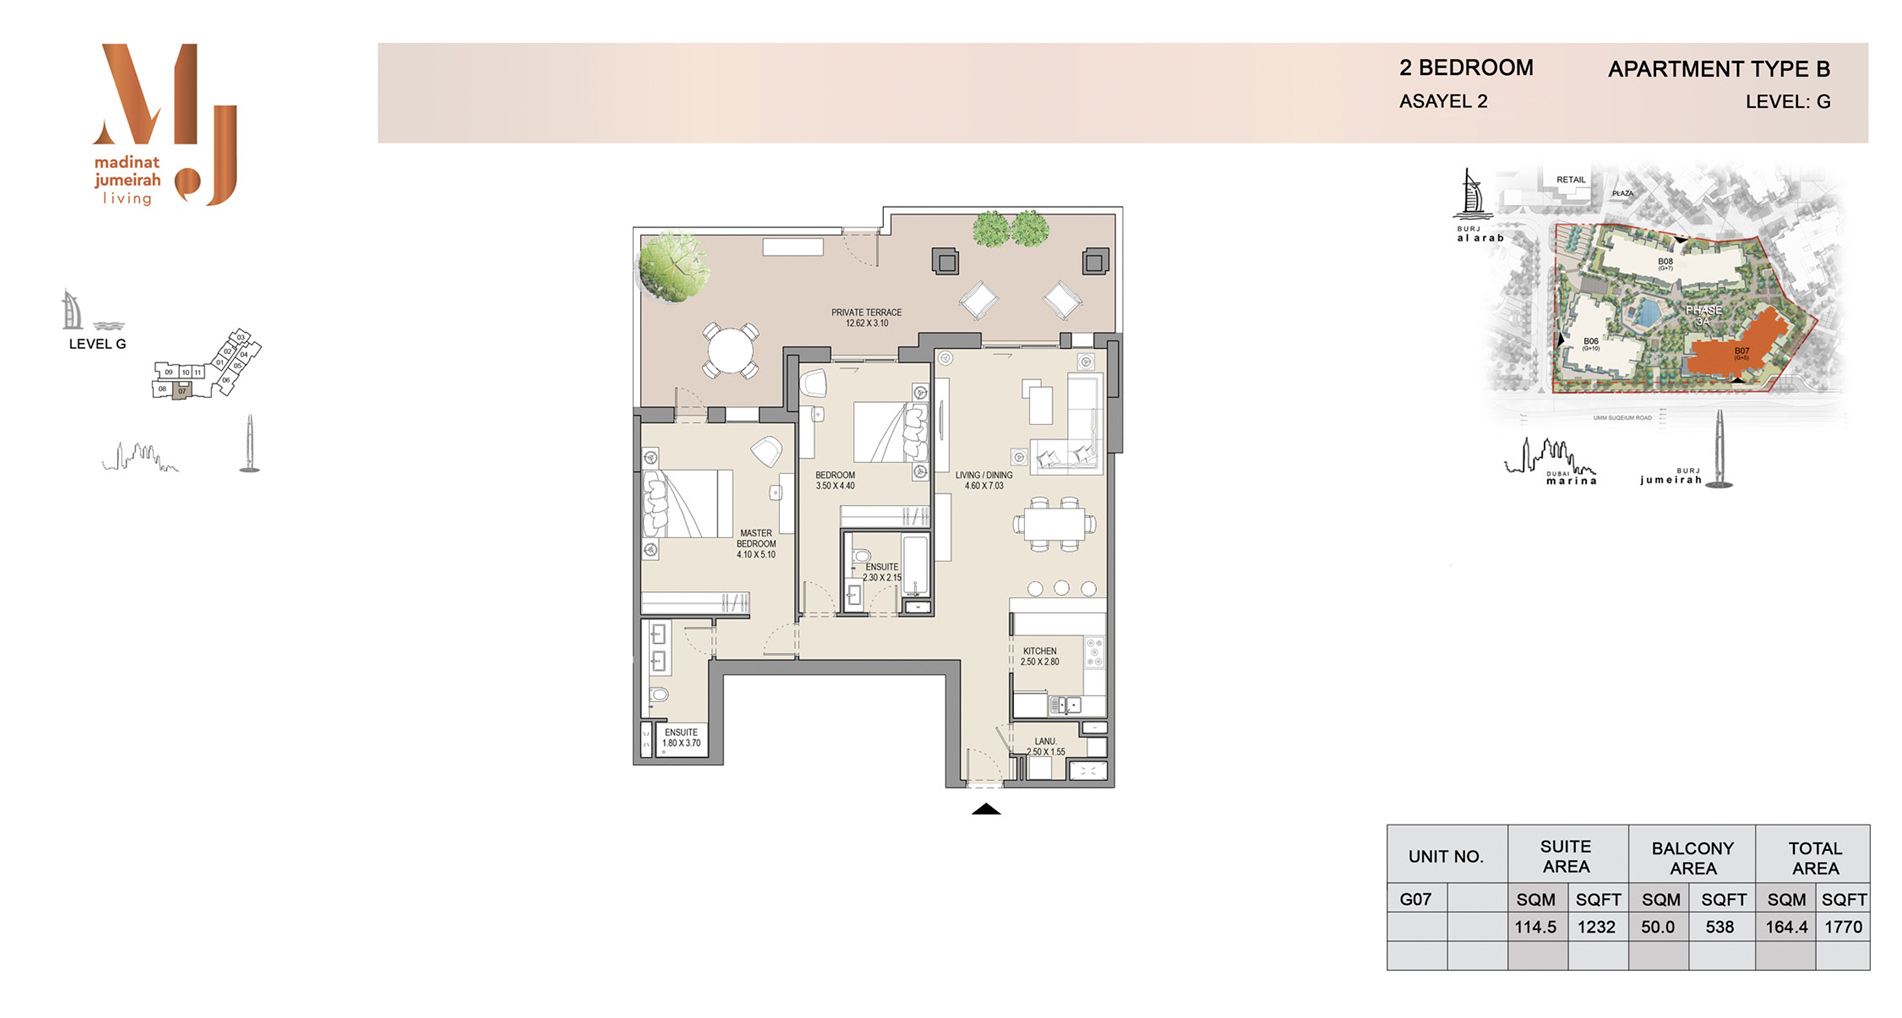 Building 2, 2 Bed Type B Level G, Size 1770    sq. ft.